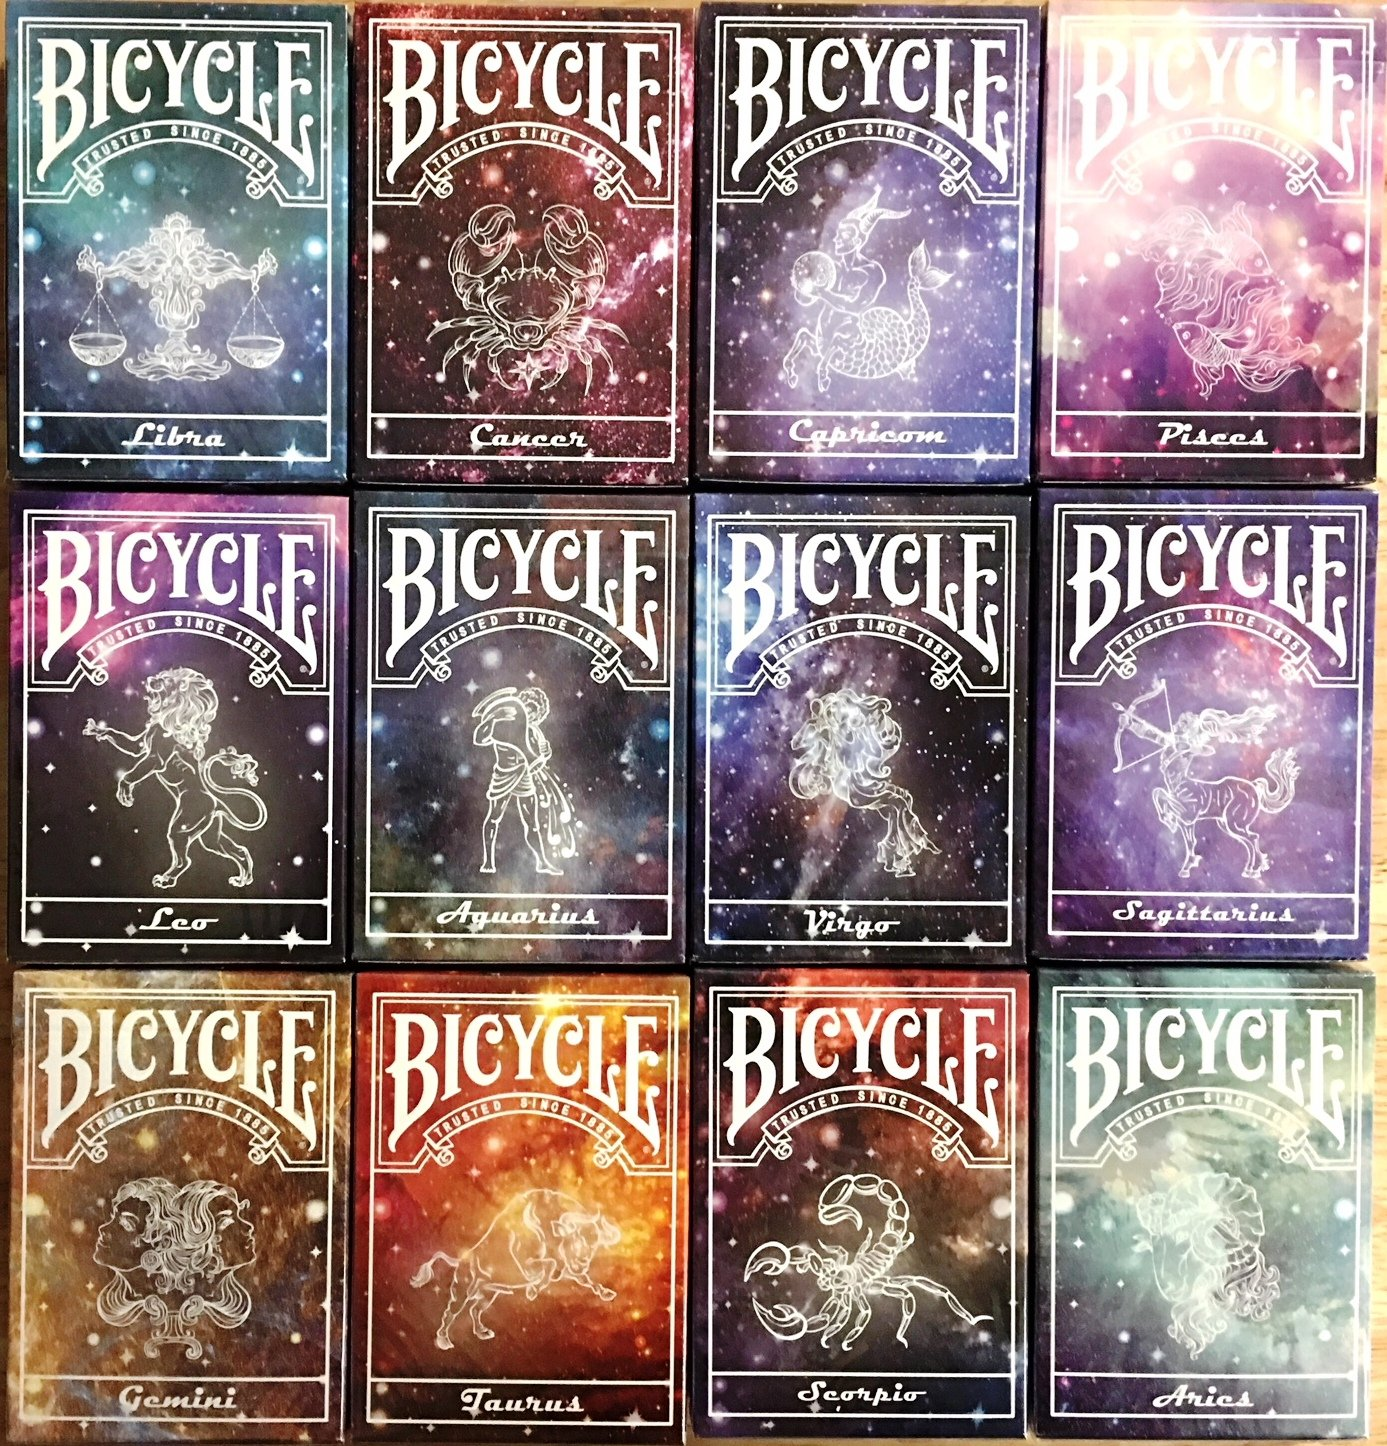 Constellation Bicycle Playing Cards - 12 Designs (12 Deck Set)